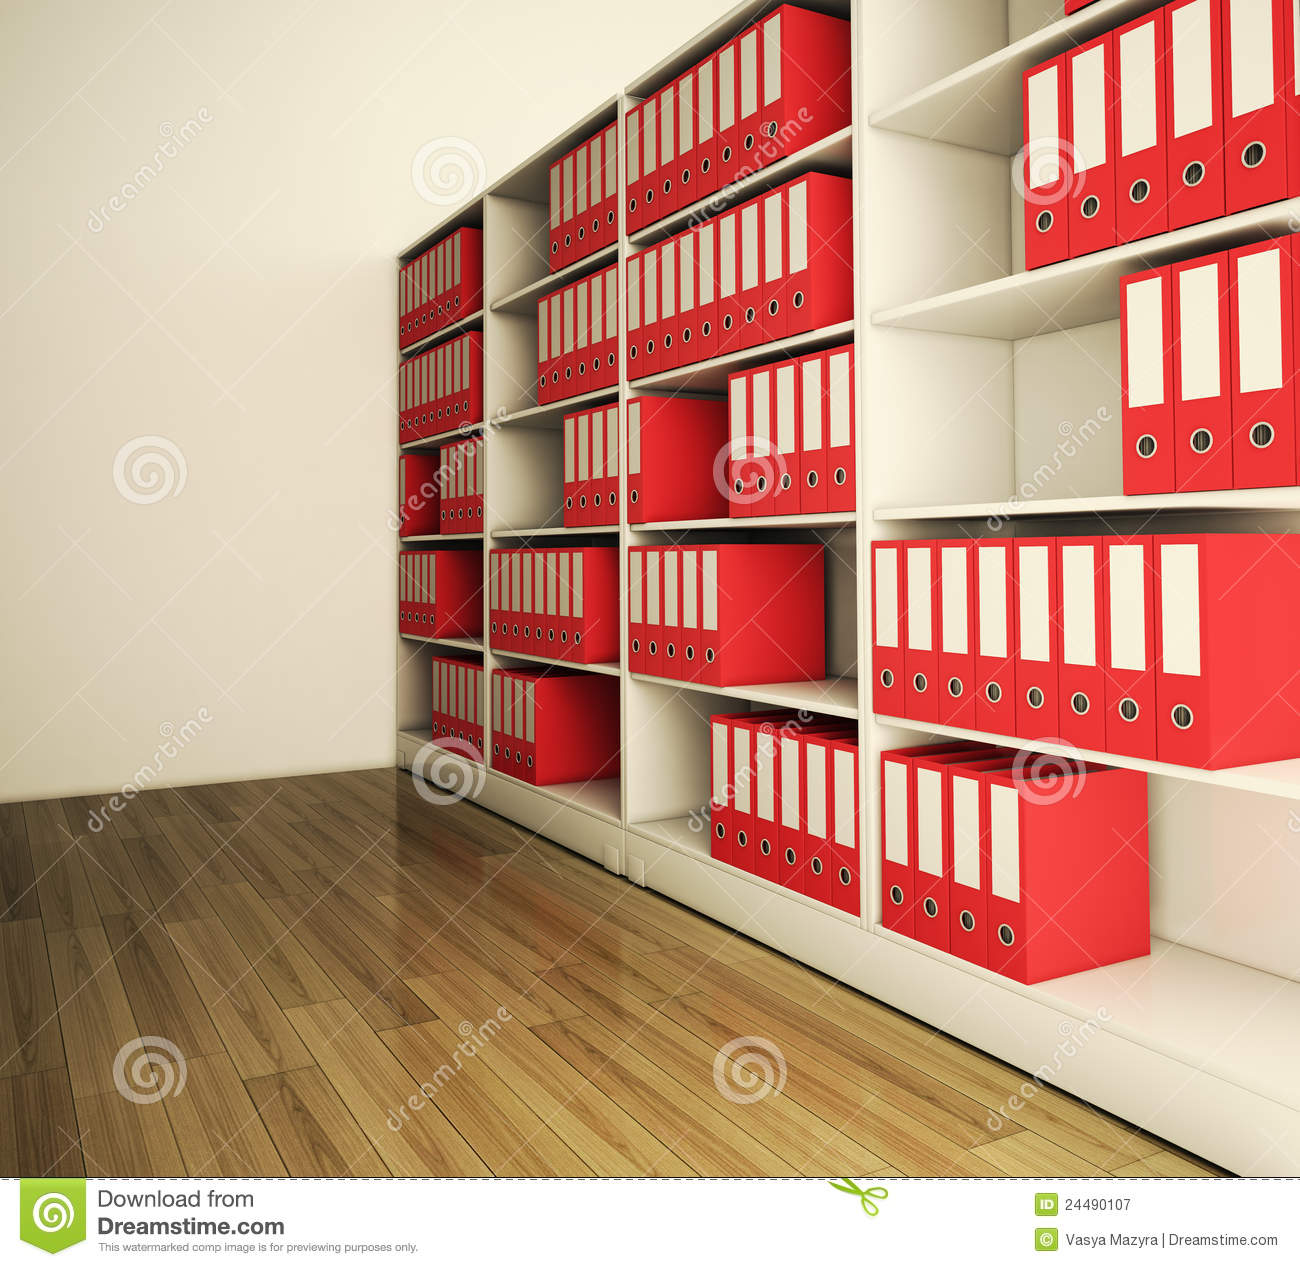 shelf archive folder stock illustration  illustration of